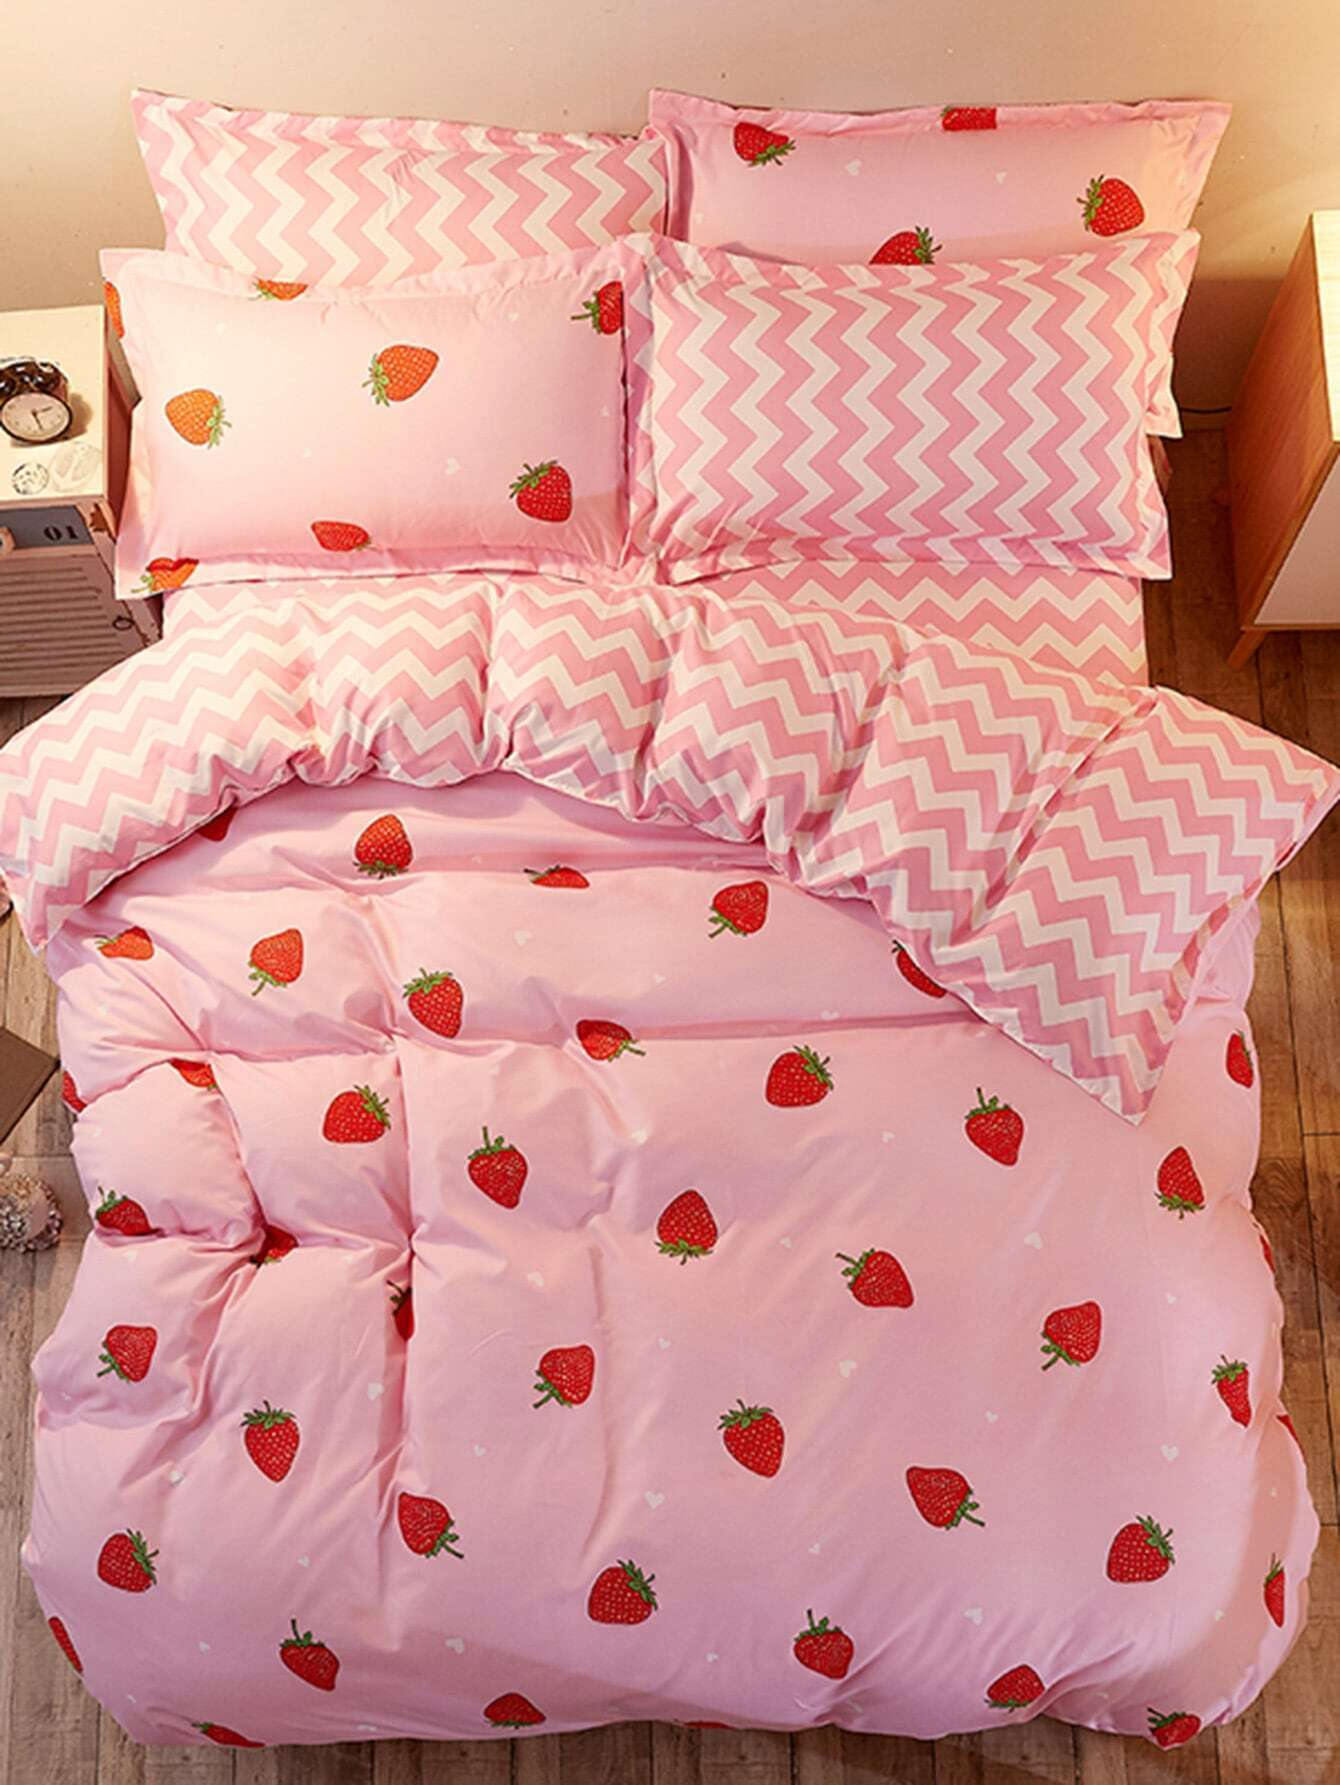 1.2m 4Pcs Fruit Print Chevron Duvet Cover Set 1 2m 4pcs fruit print duvet cover set